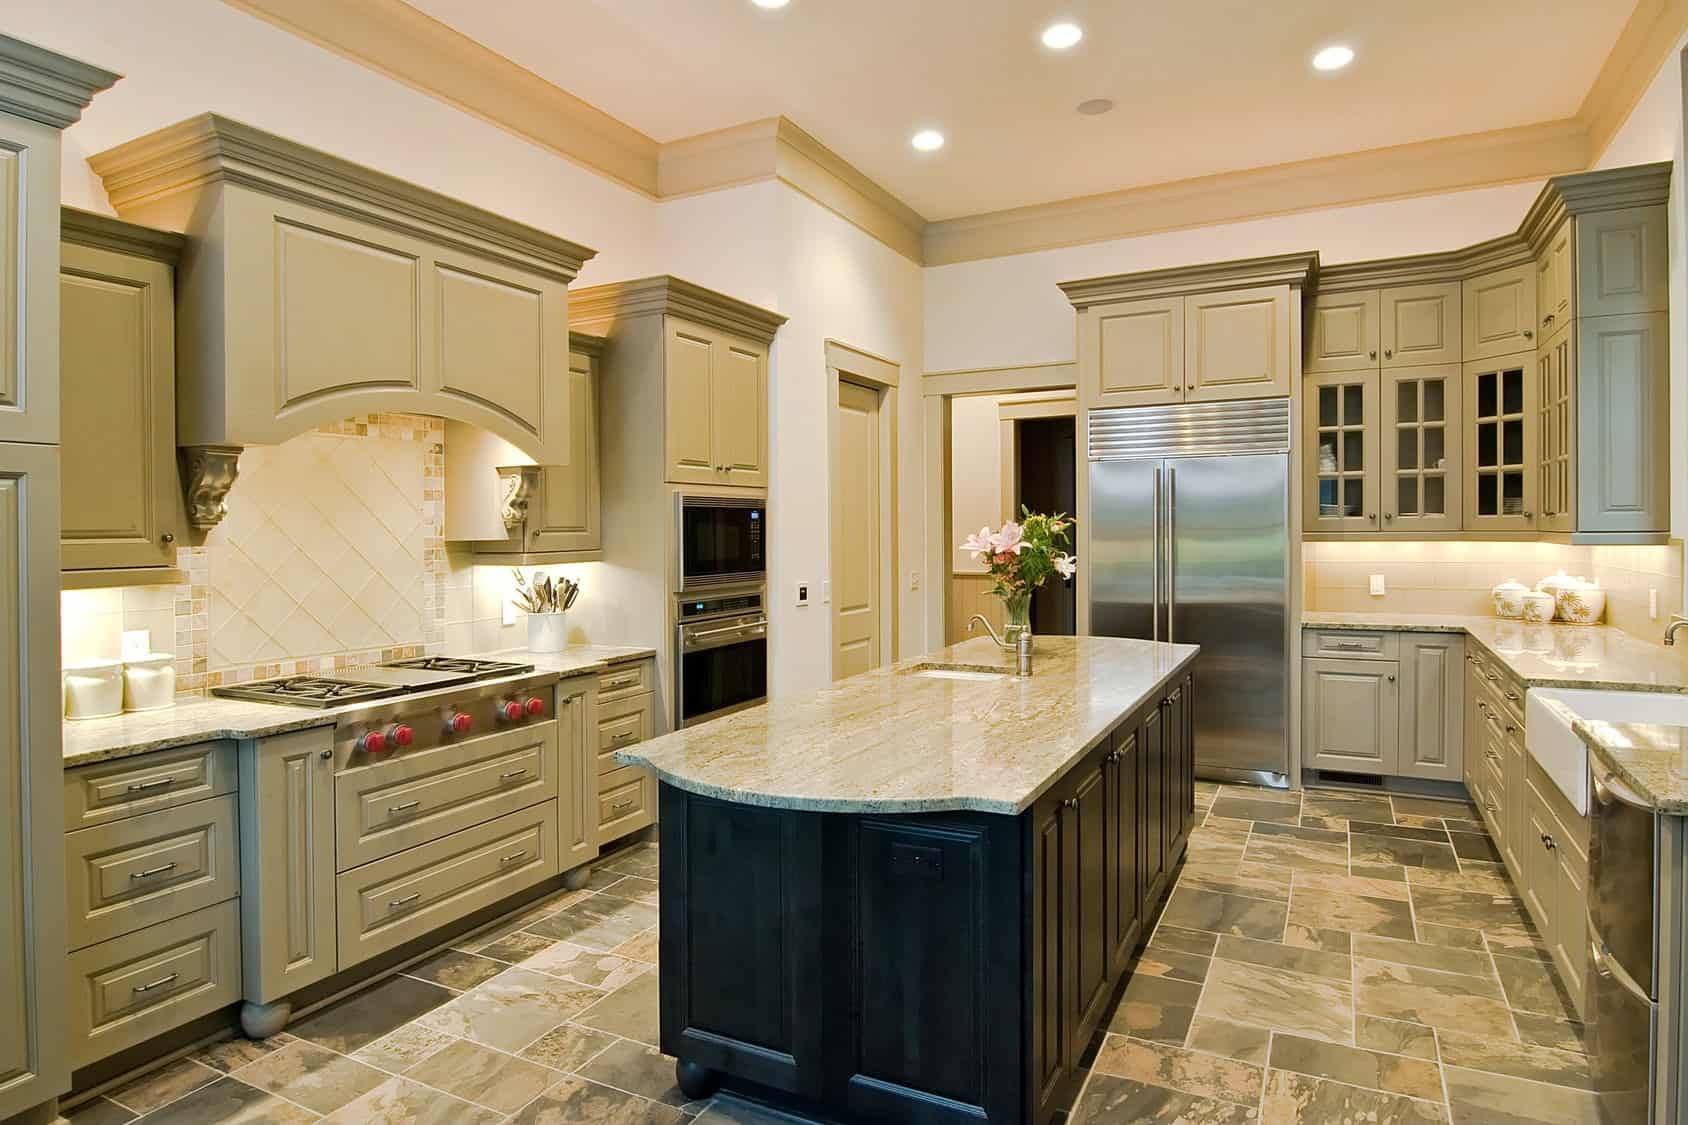 Recessed ceiling lights illuminate this kitchen featuring a dark wood island bar over limestone flooring. It is surrounded by stainless steel appliances and beige cabinetry against the white walls.